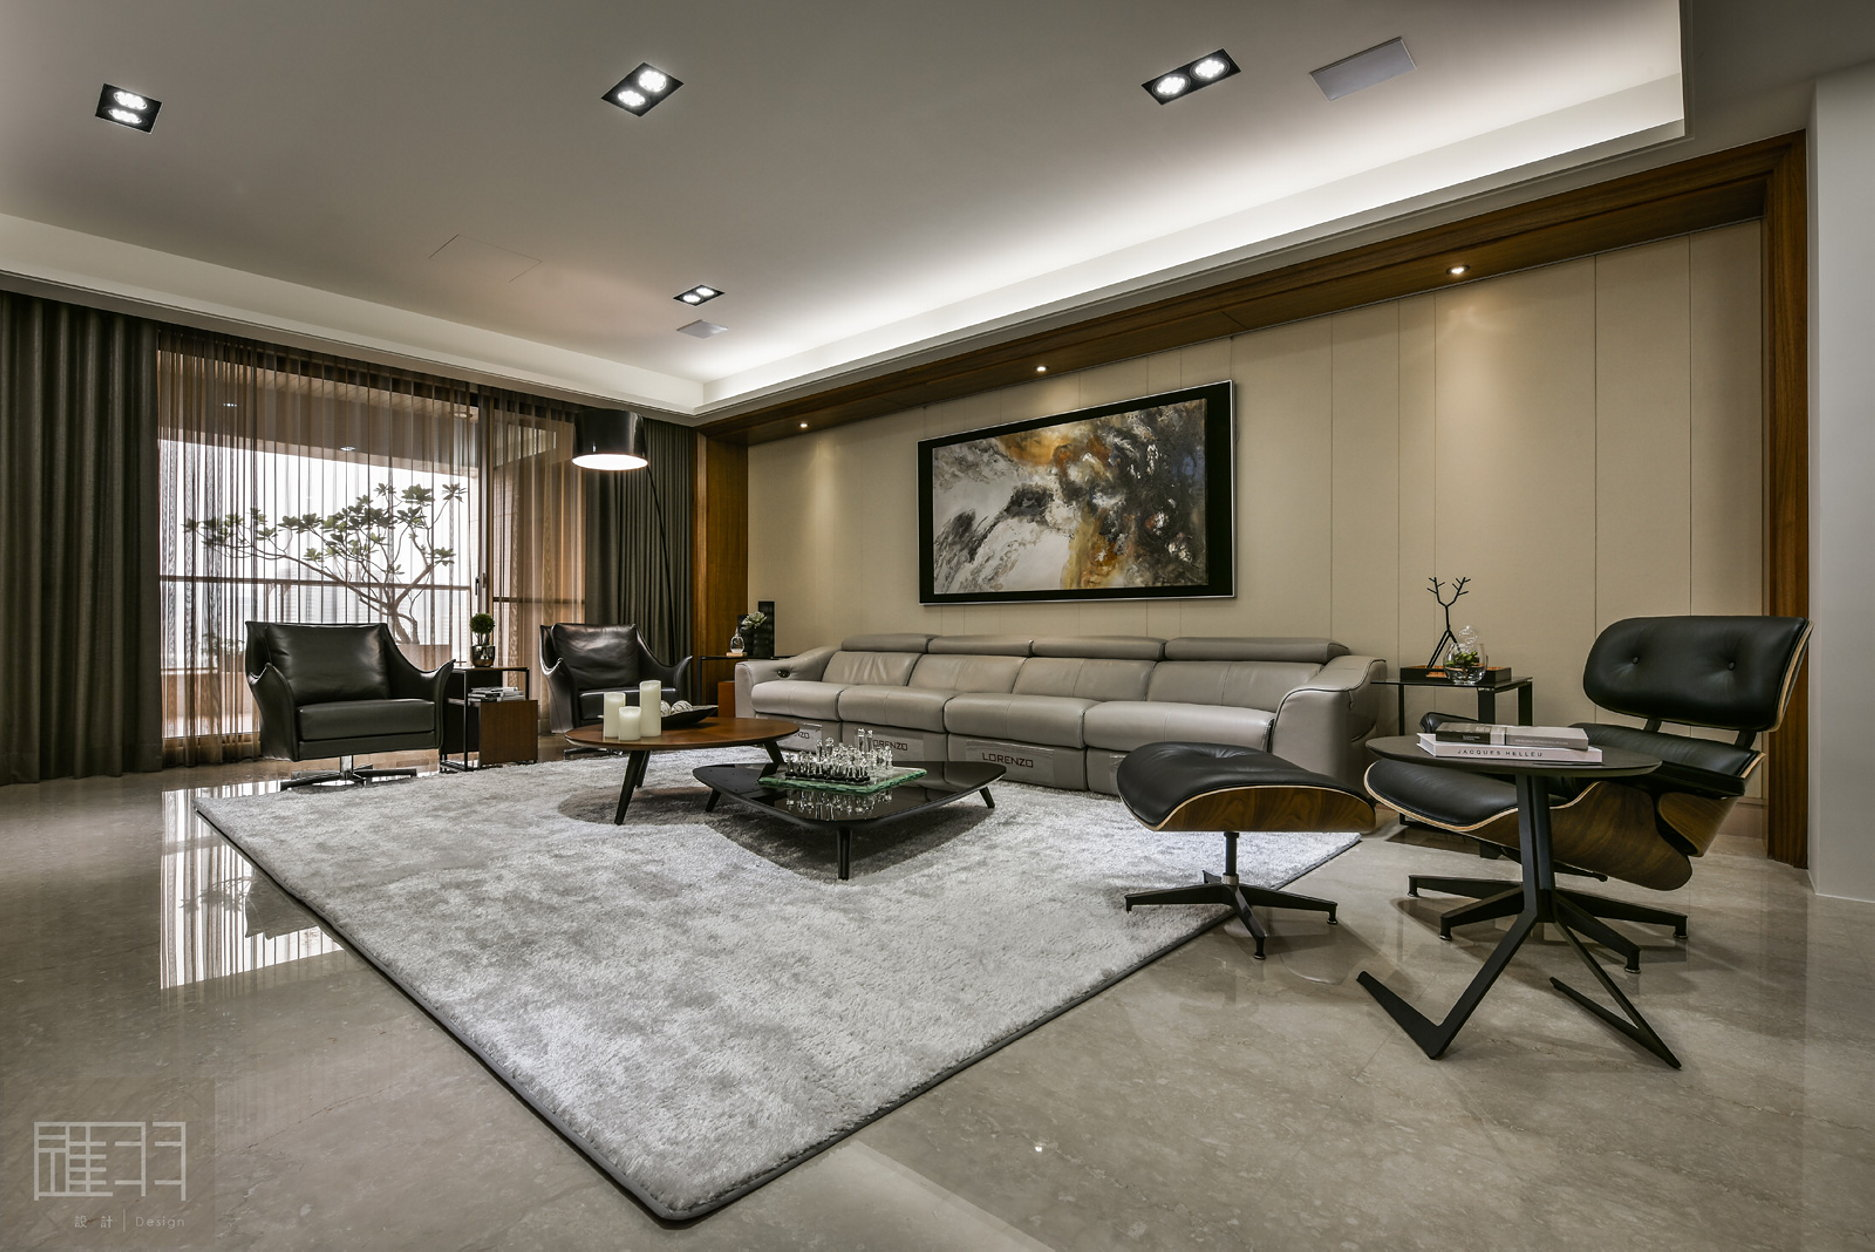 Interior Of The Apartment In Taiwan From Manson Hsiao Hui